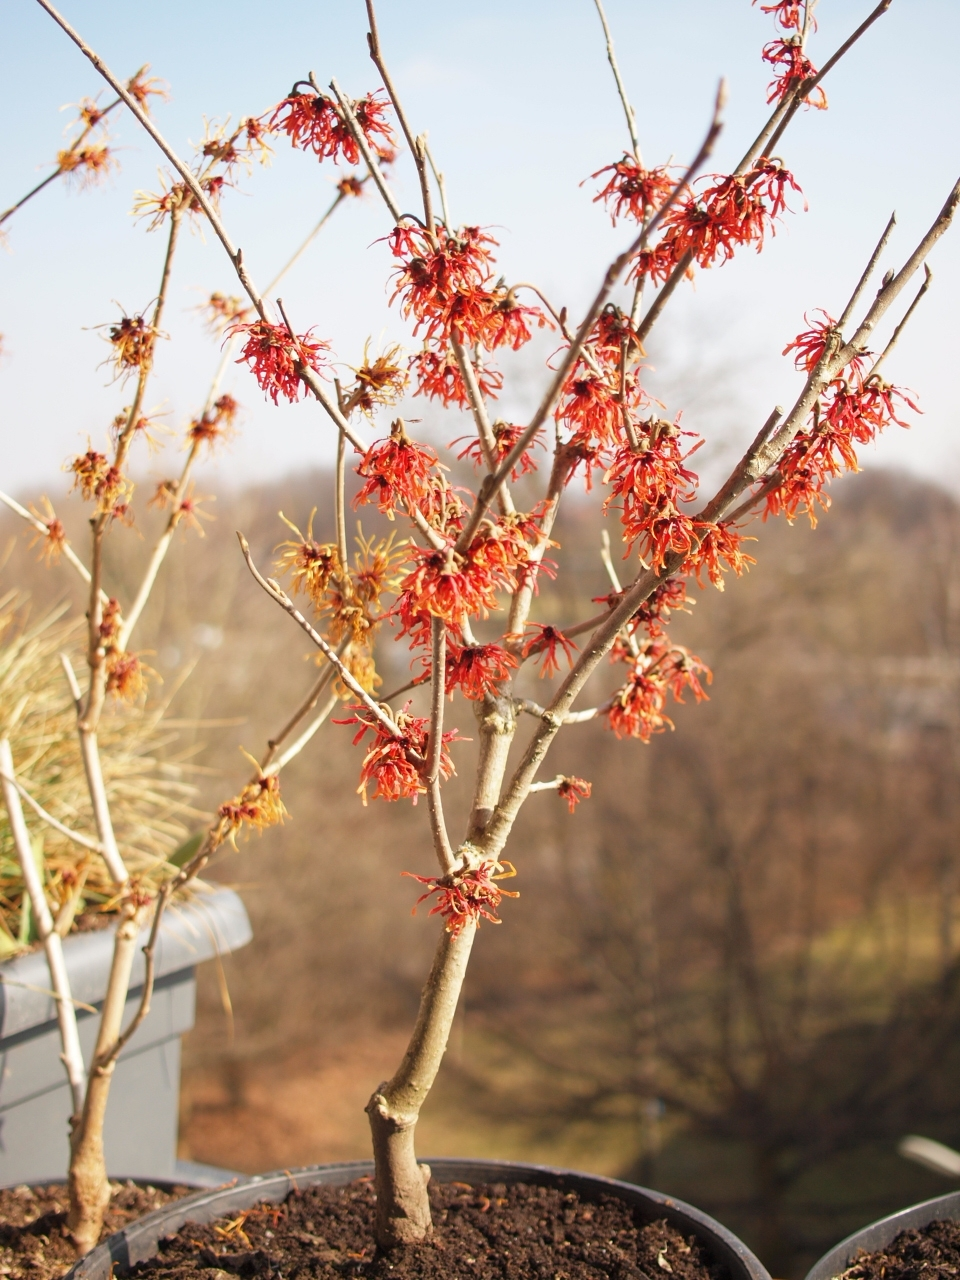 Hamamelis_x_intermedia_'Rubin'_right'_'Jelena'_left.JPG